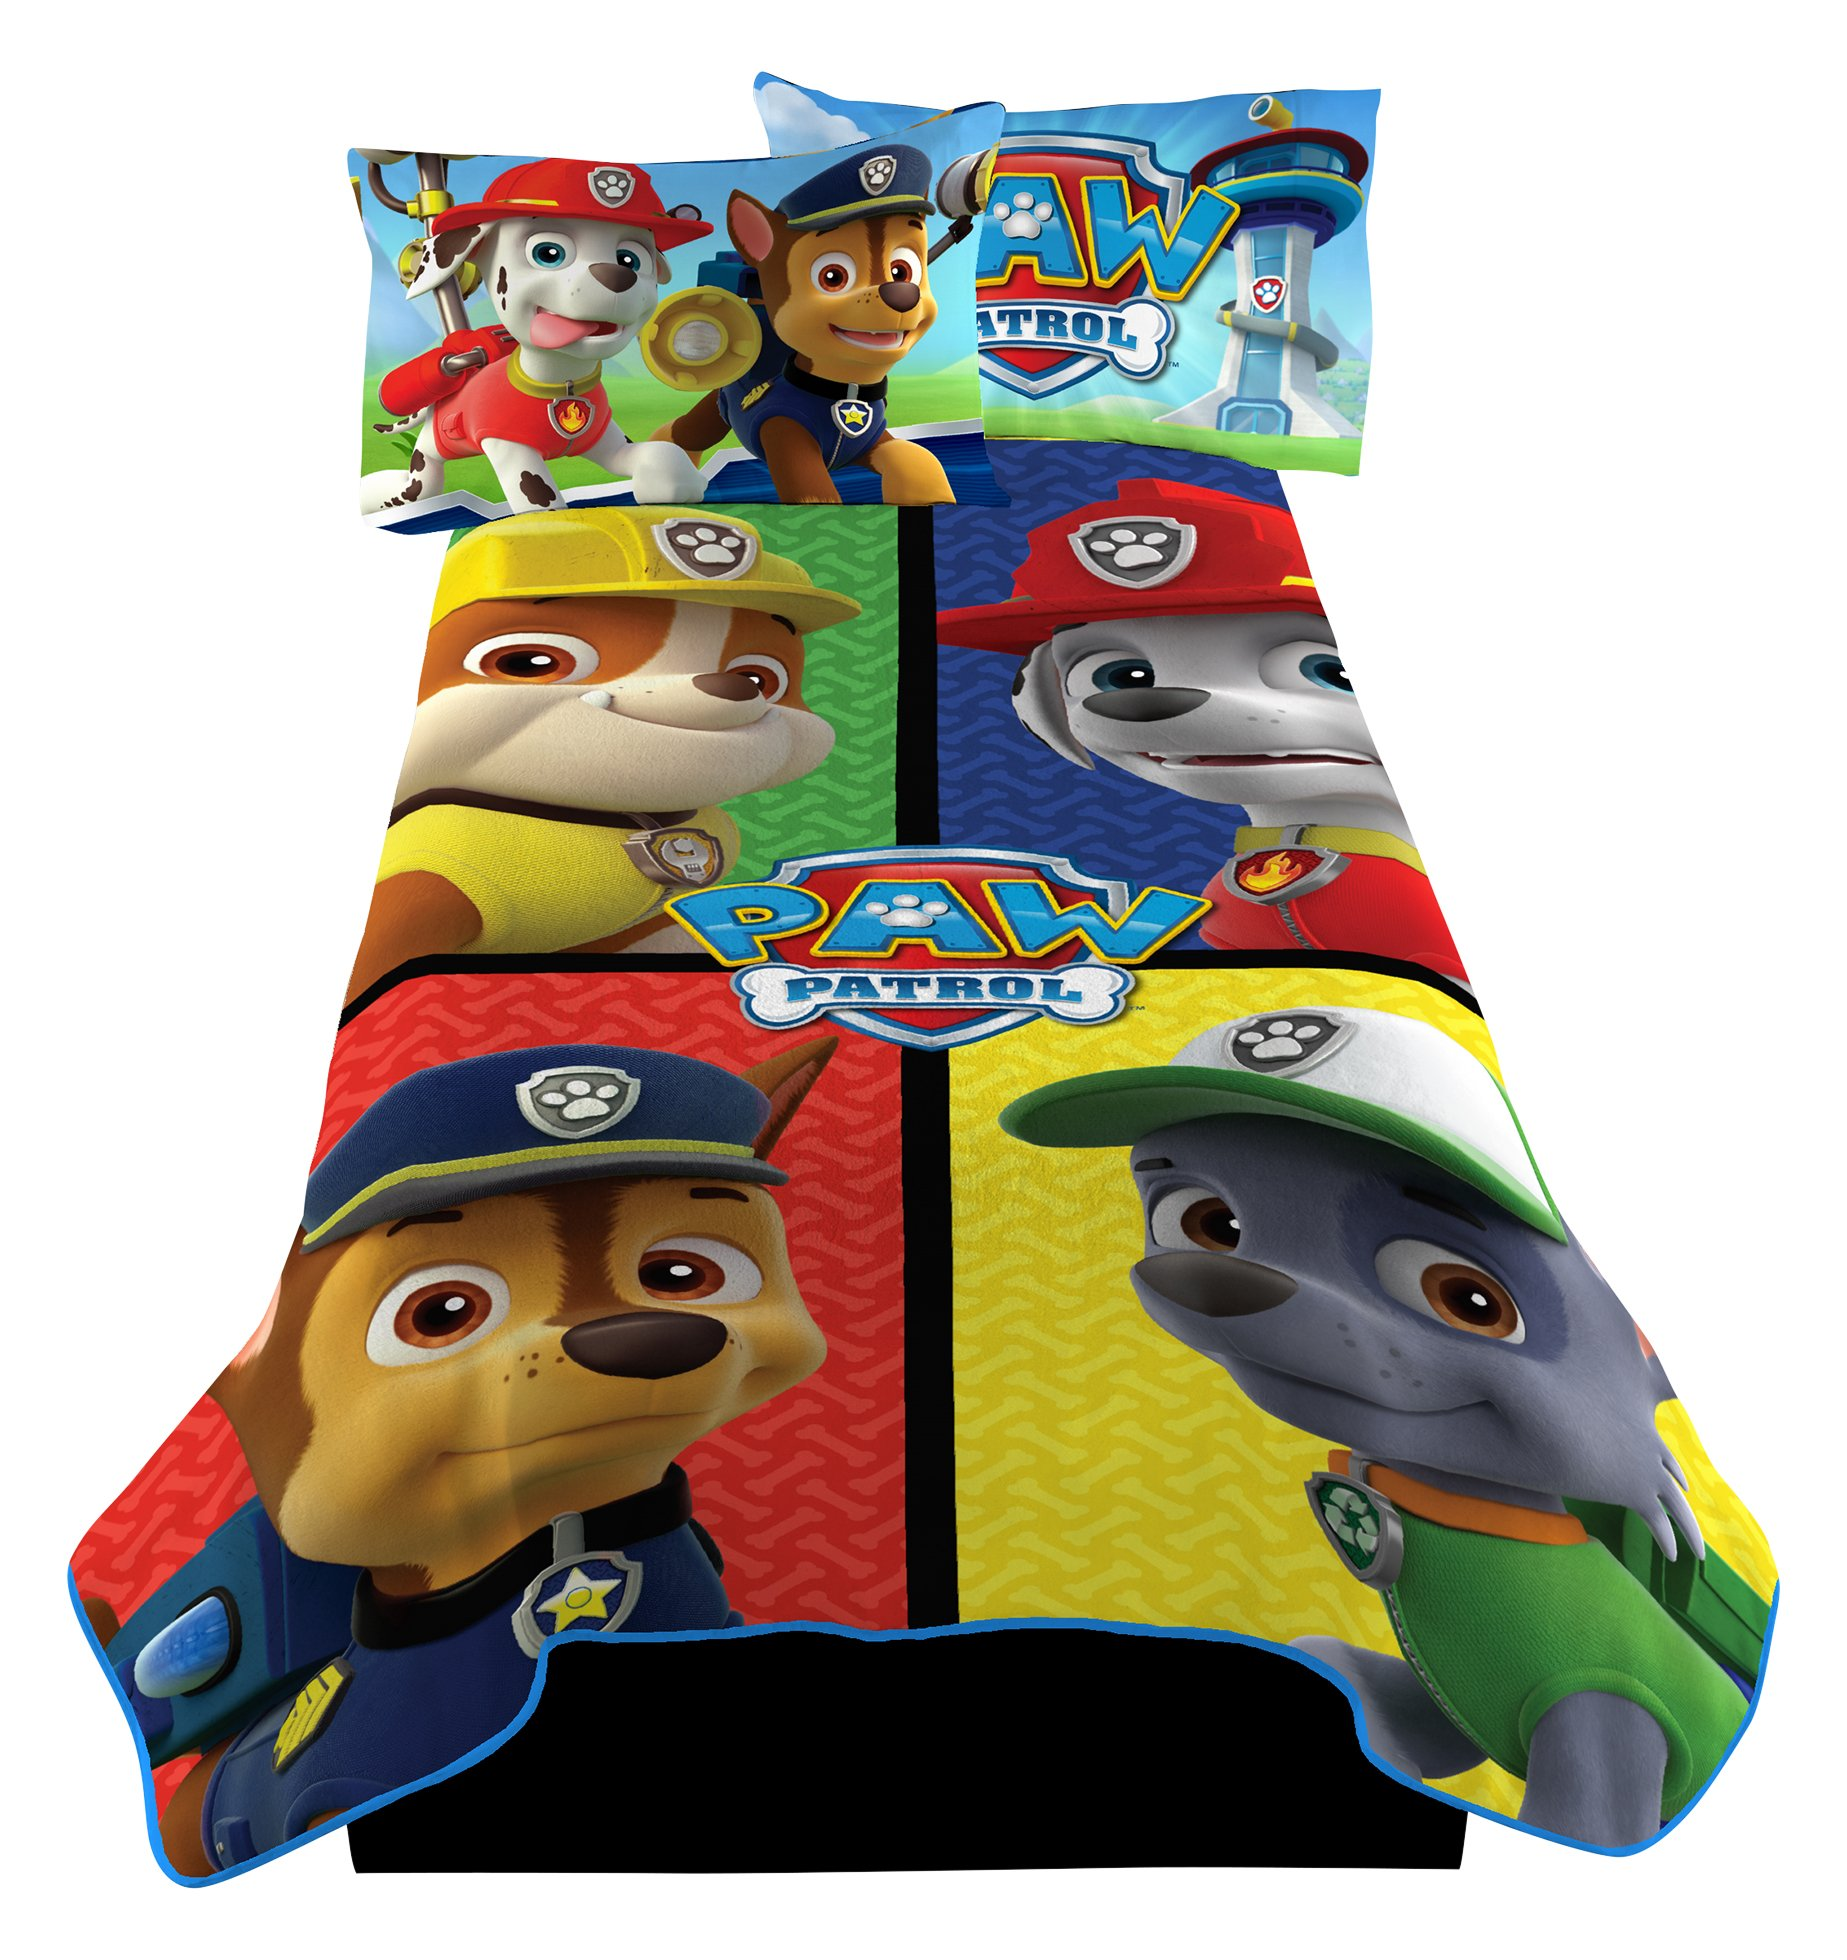 Nickelodeon PAW Patrol Puppy Rescue Microraschel Blanket by Nickelodeon